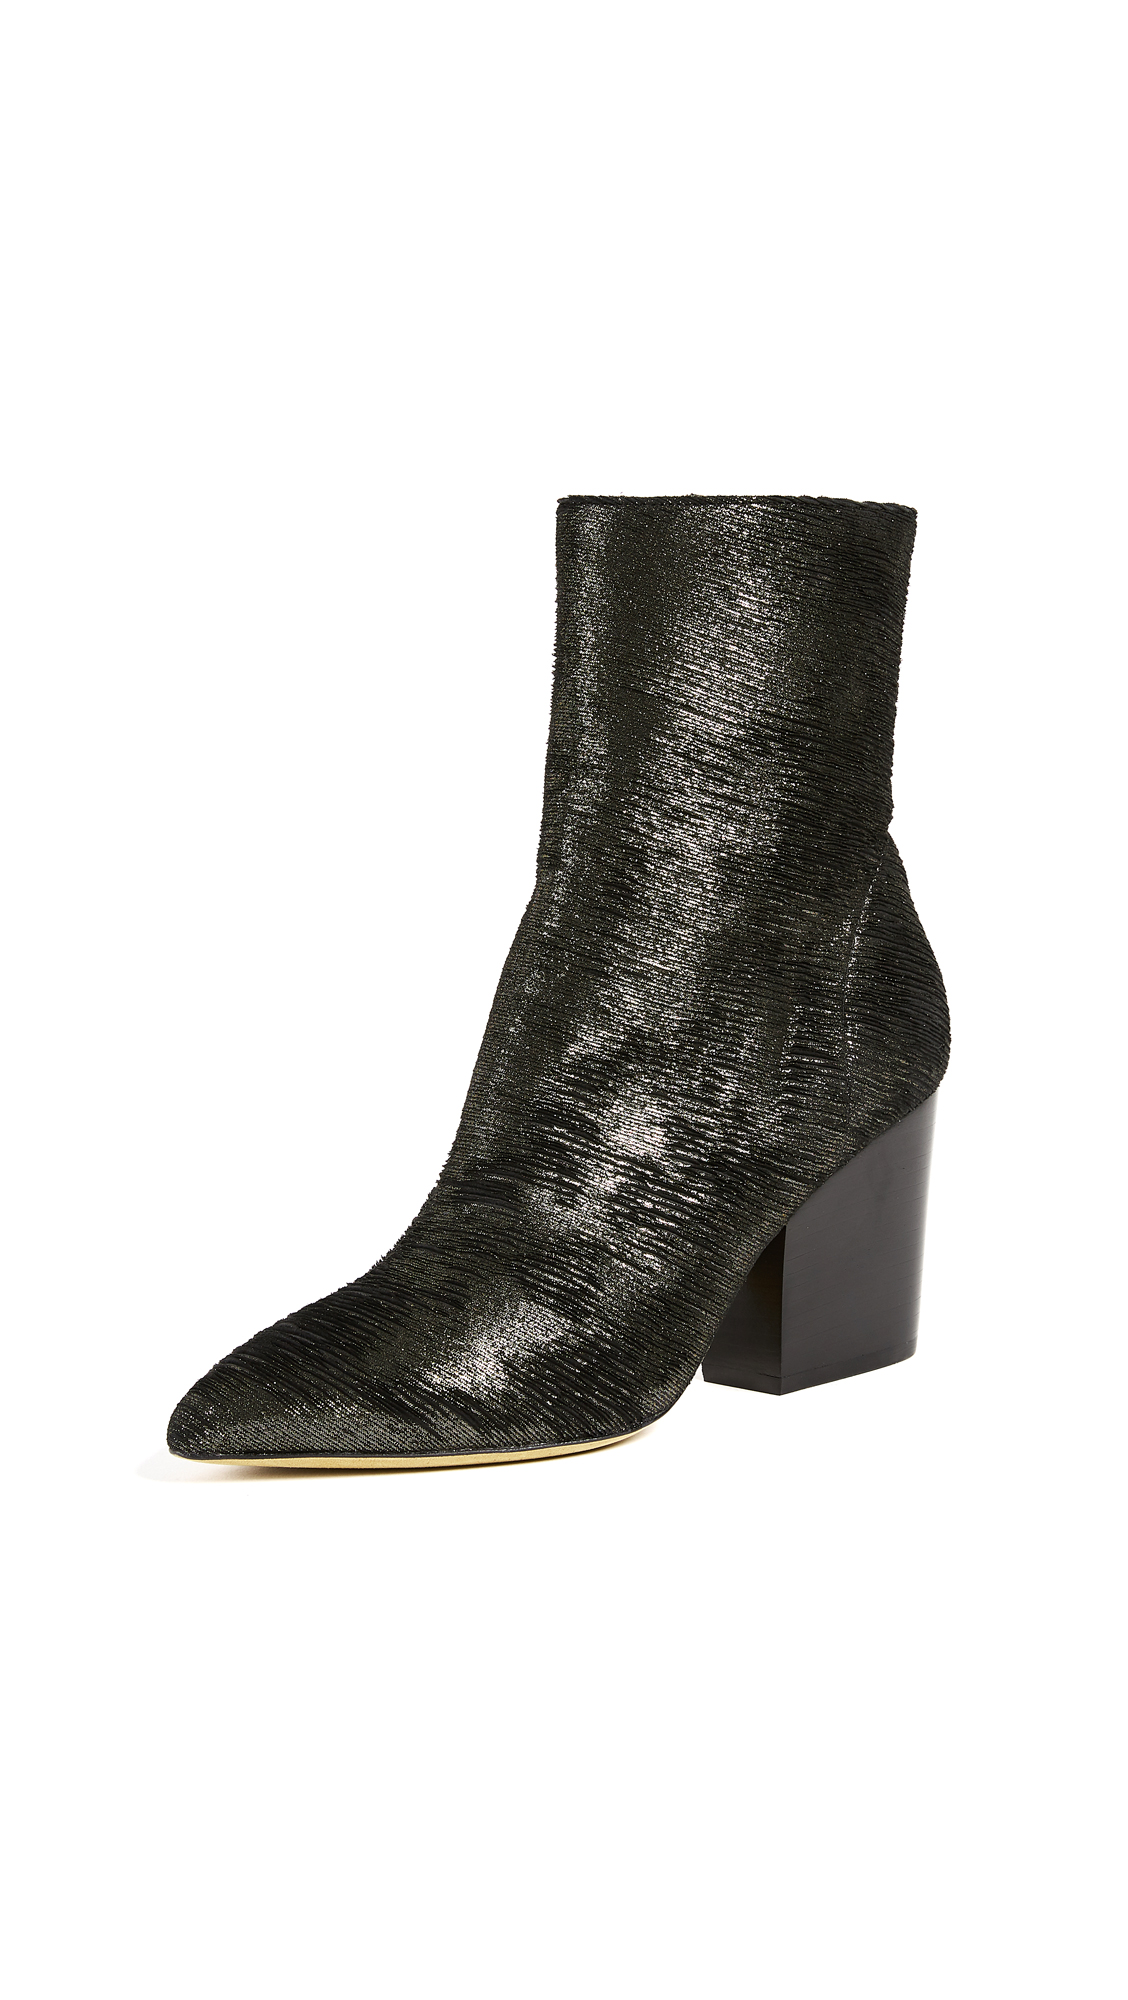 IRO Ladilor Booties - Black/Gold